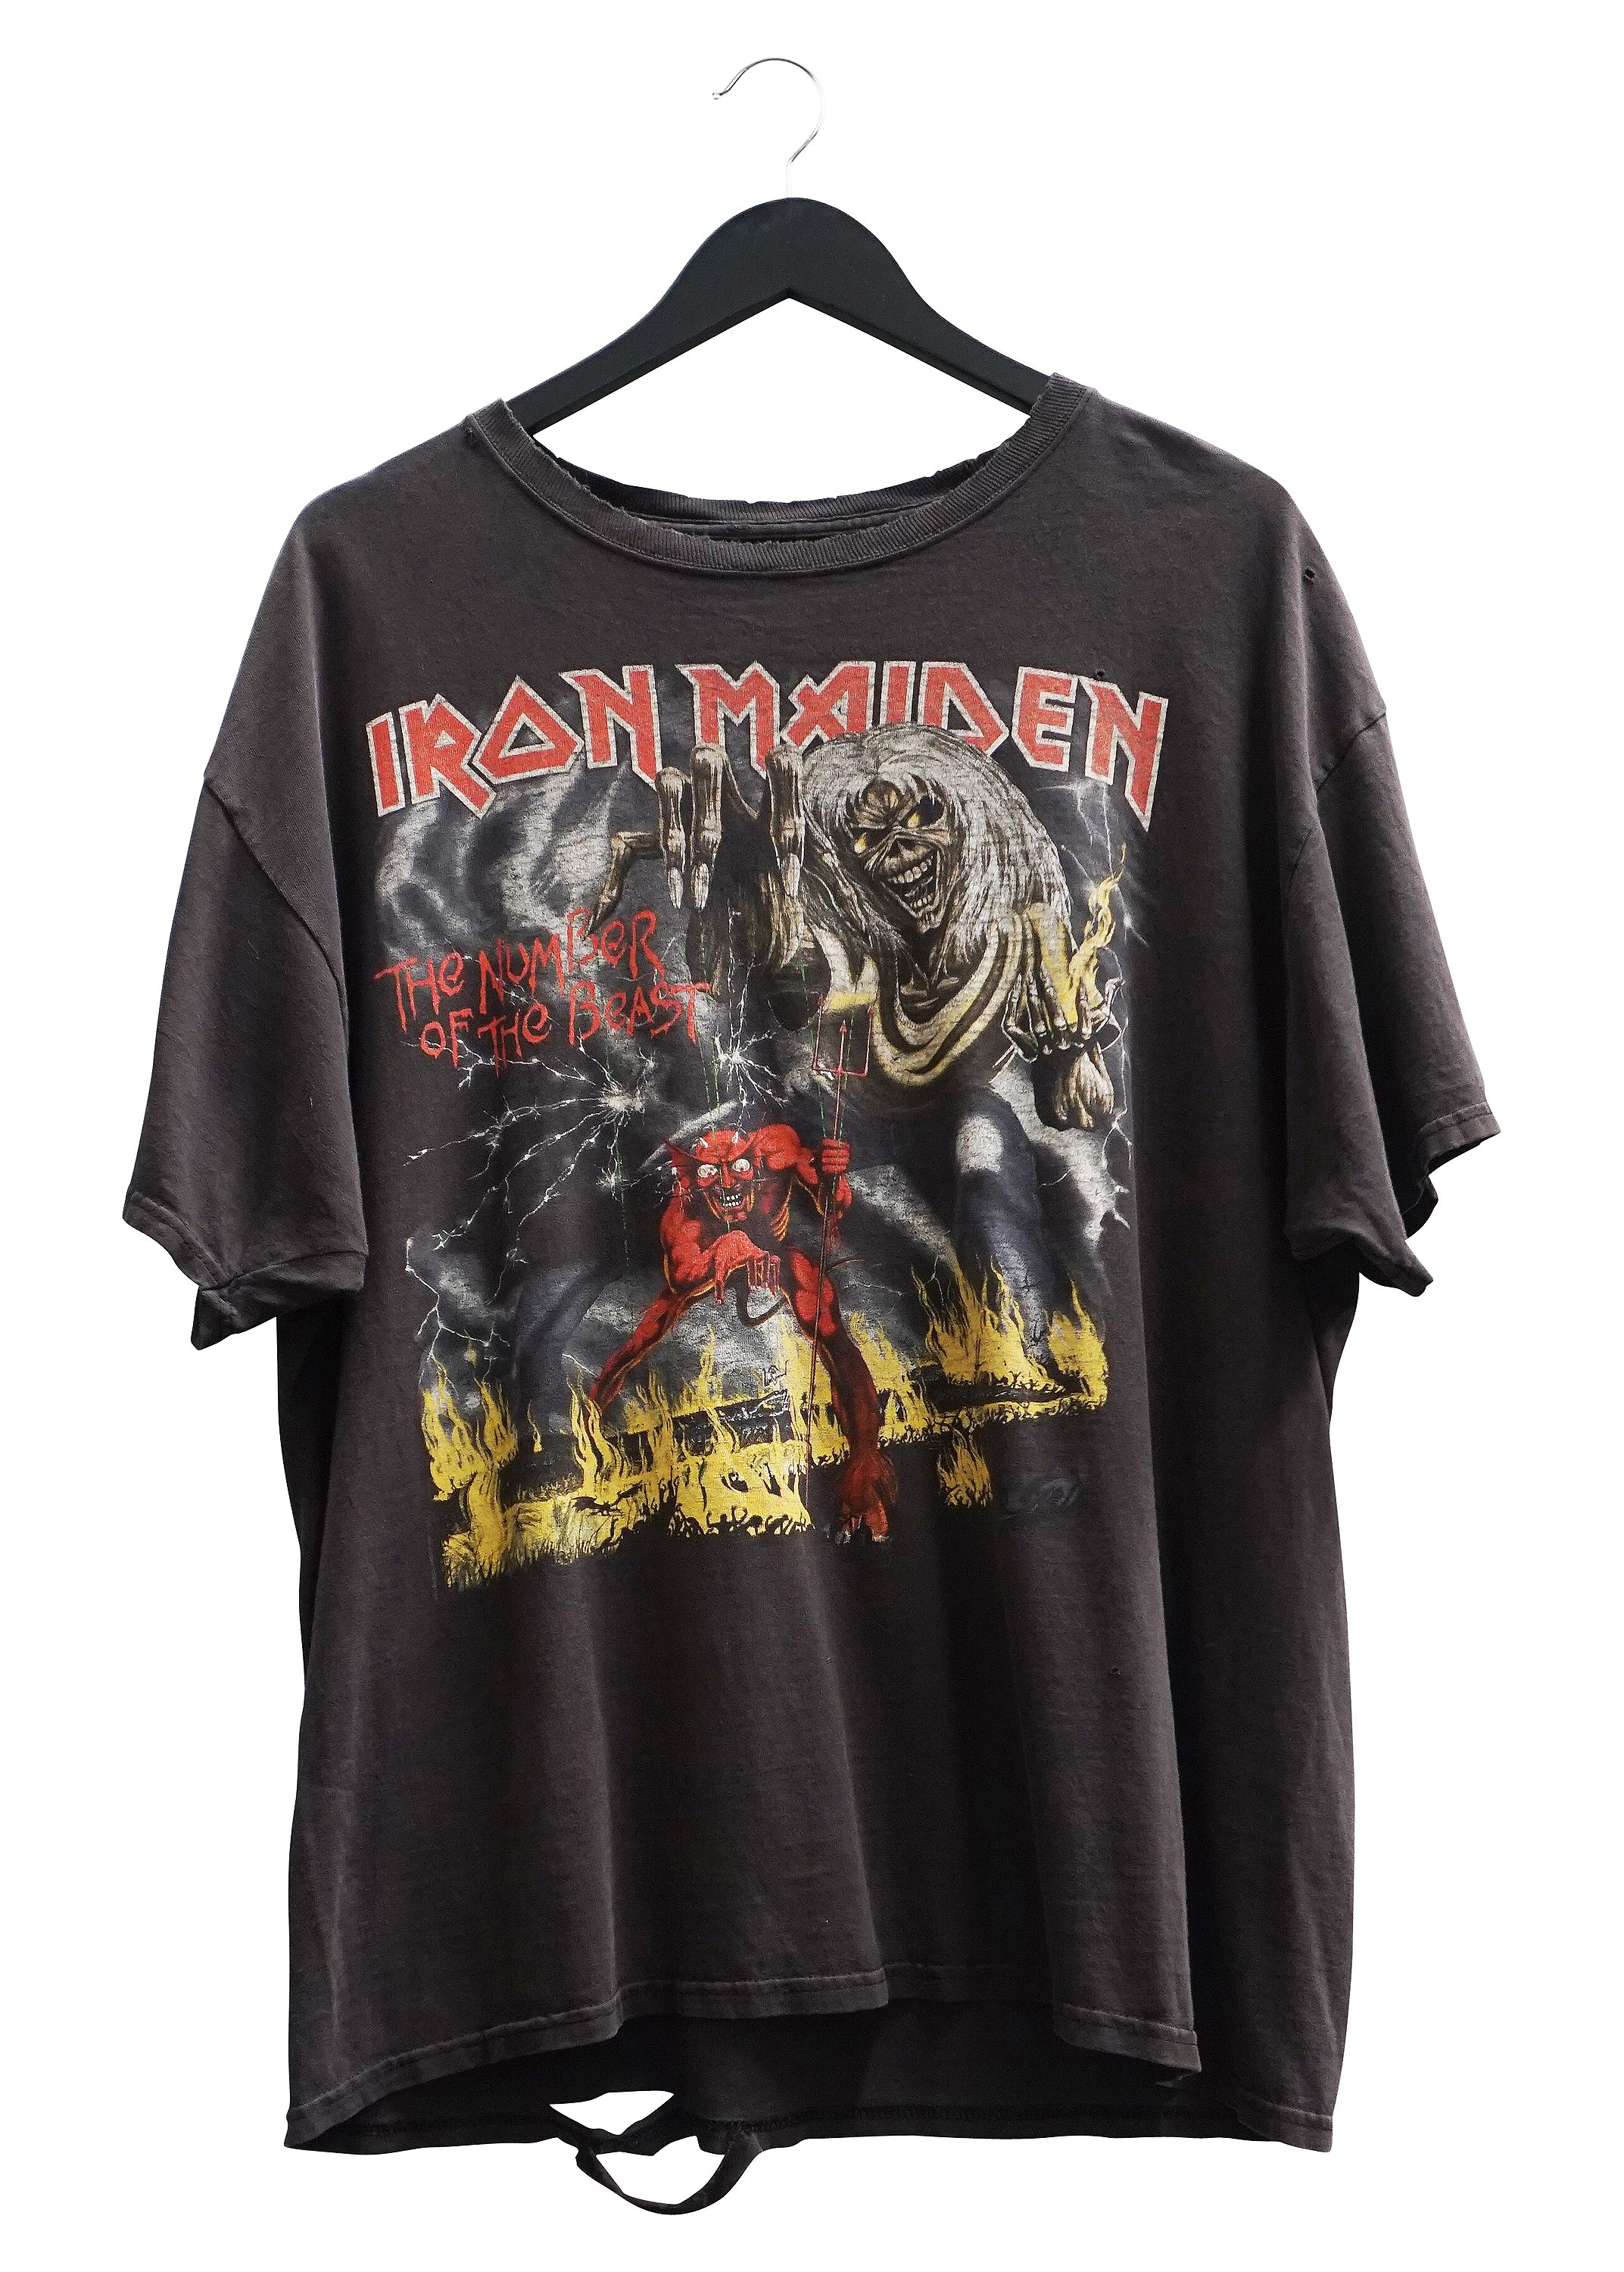 IRON MAIDEN 'NUMBER OF THE BEAST' VINTAGE TEE